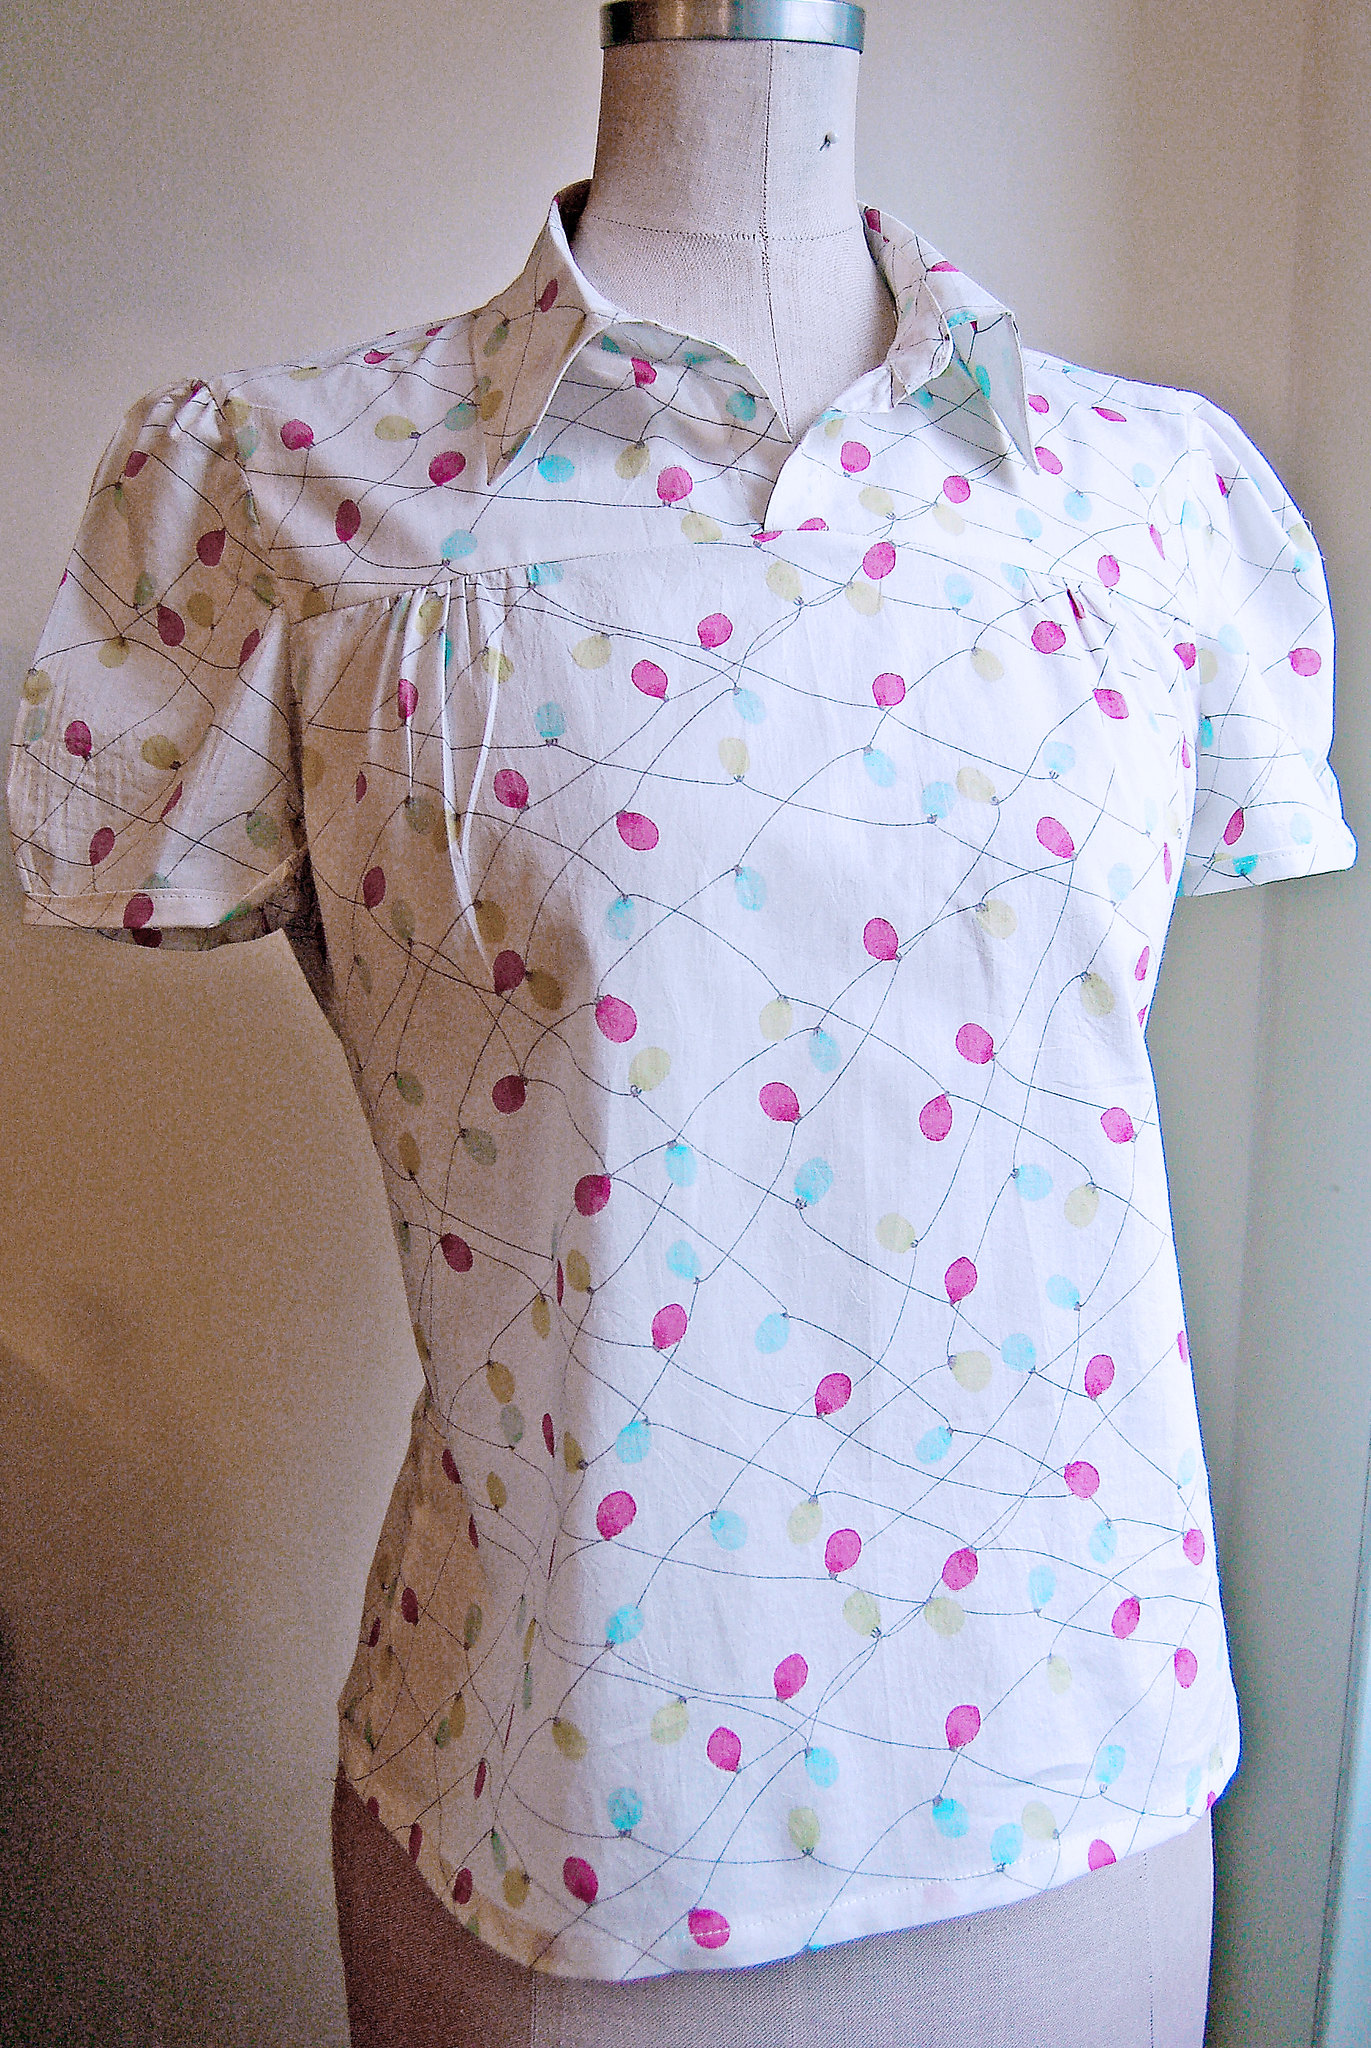 Blouse made of Liberty print